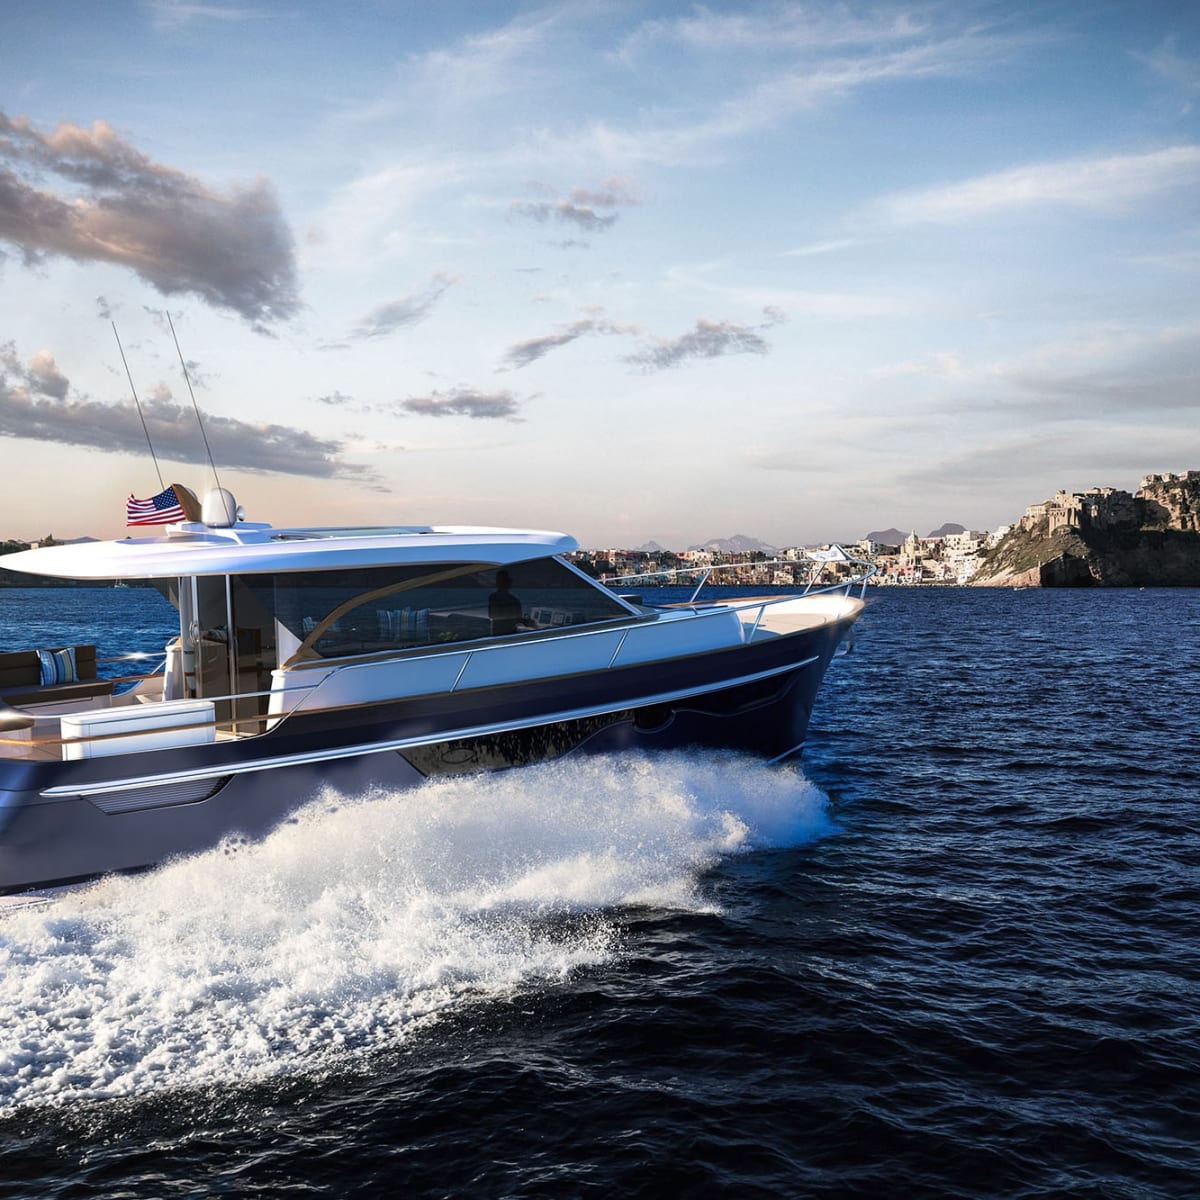 Yacht Review: Burger 48 Cruiser